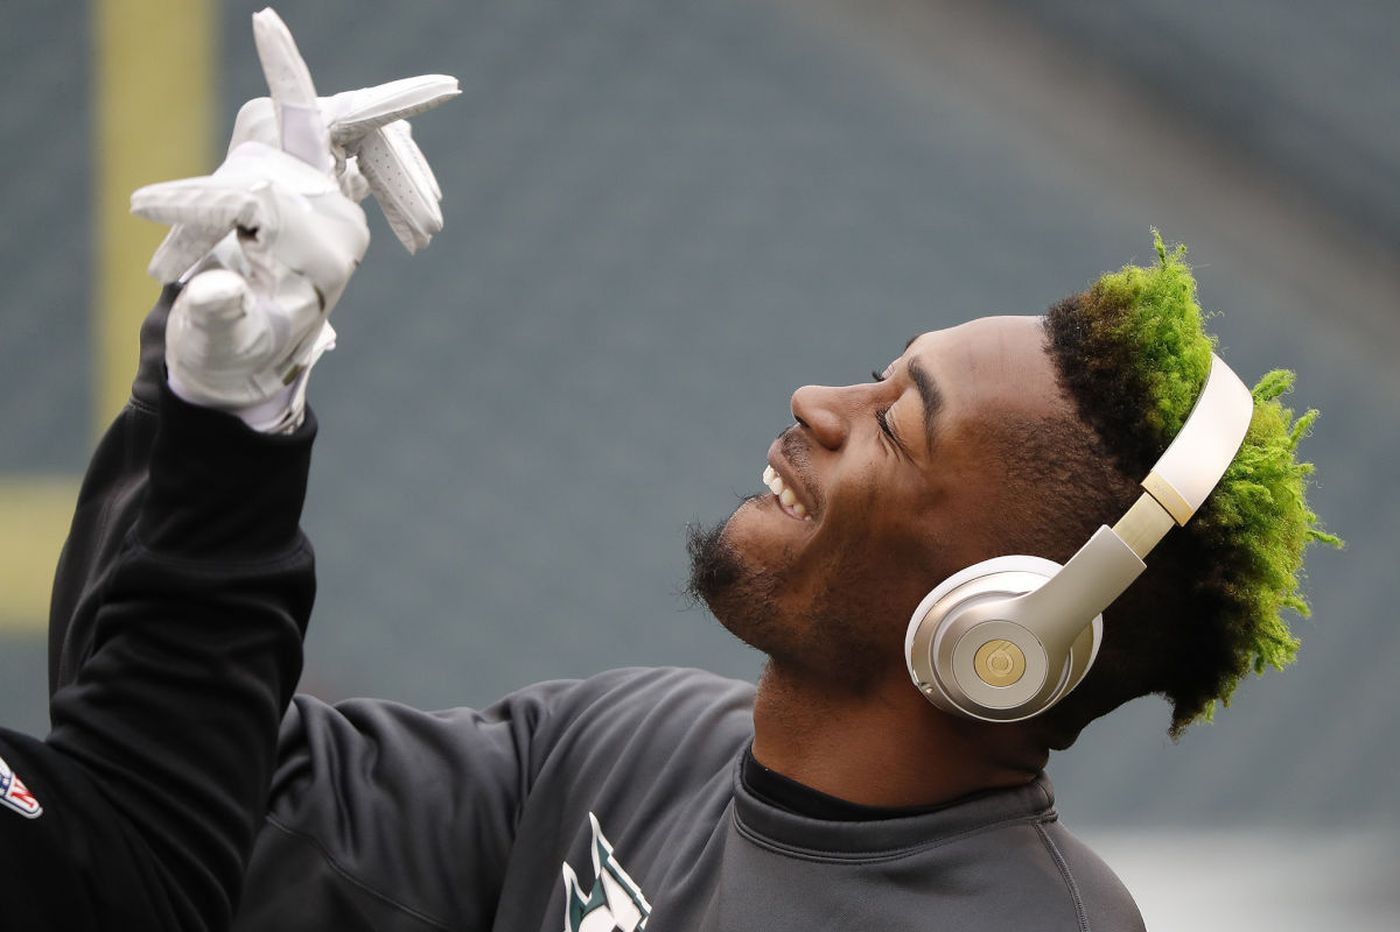 Eagles rookie Jalen Mills is really good - just ask him